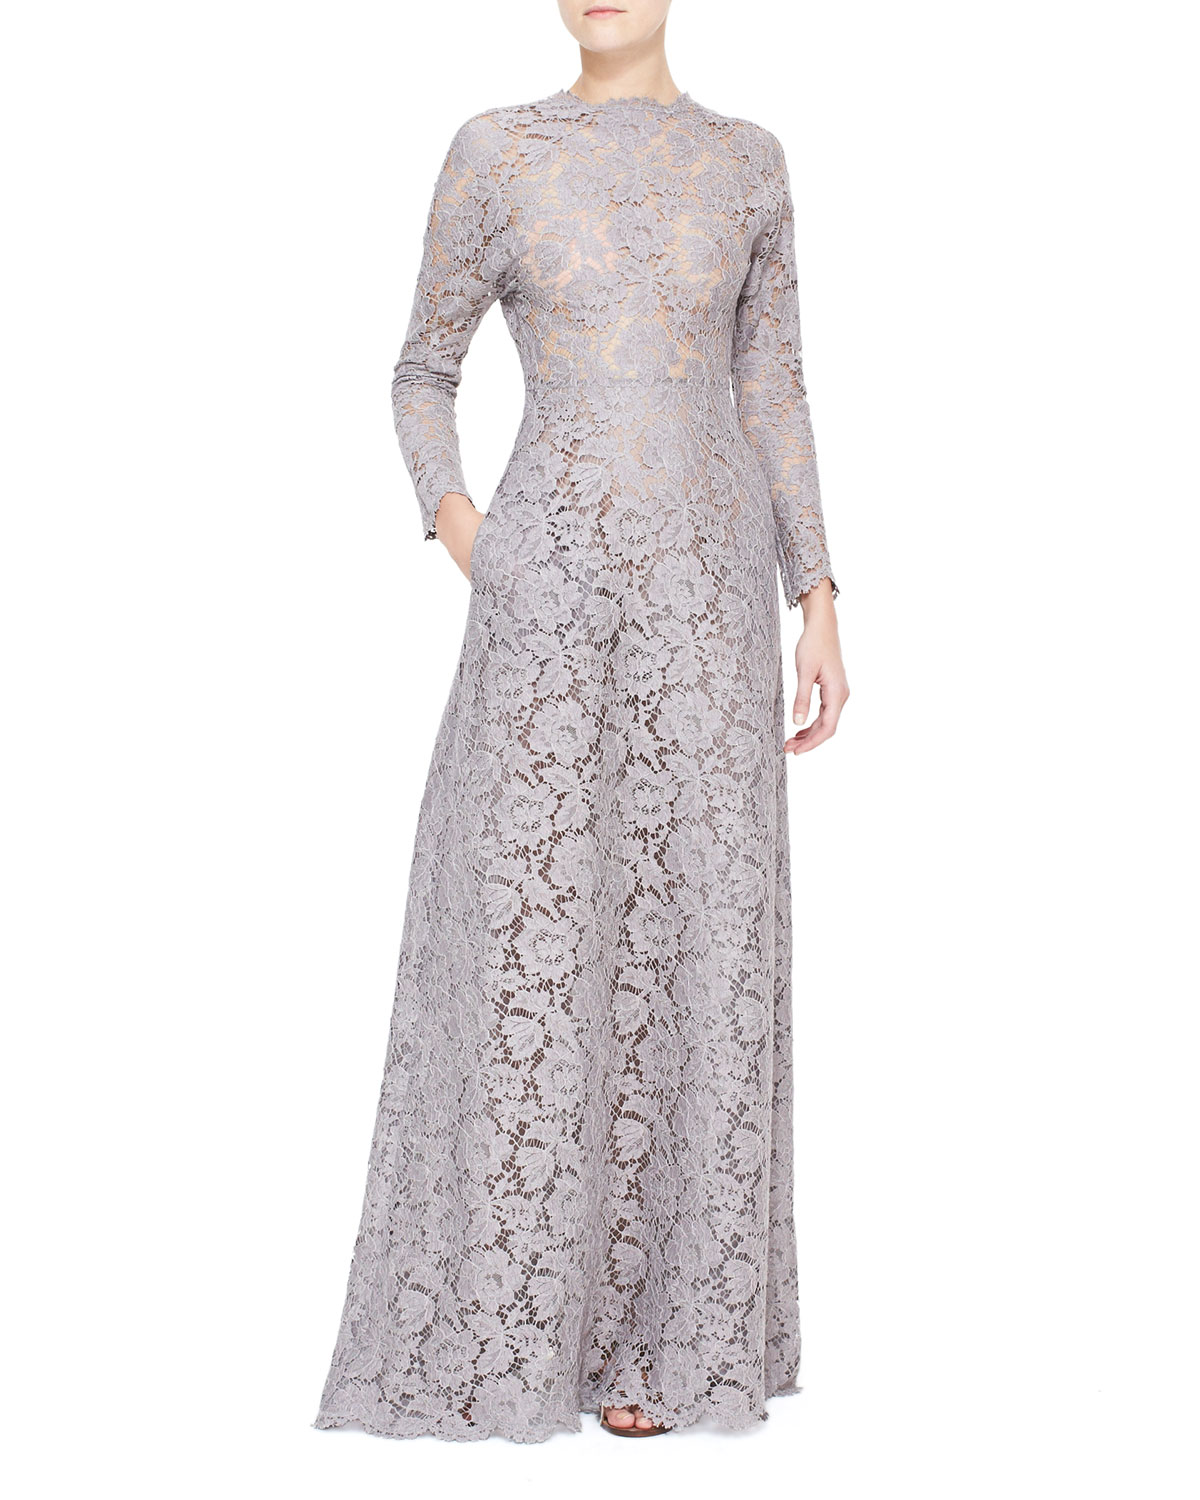 Womens Long Sleeve Lace Gown with Open Back   Valentino   Lilac gray (6)